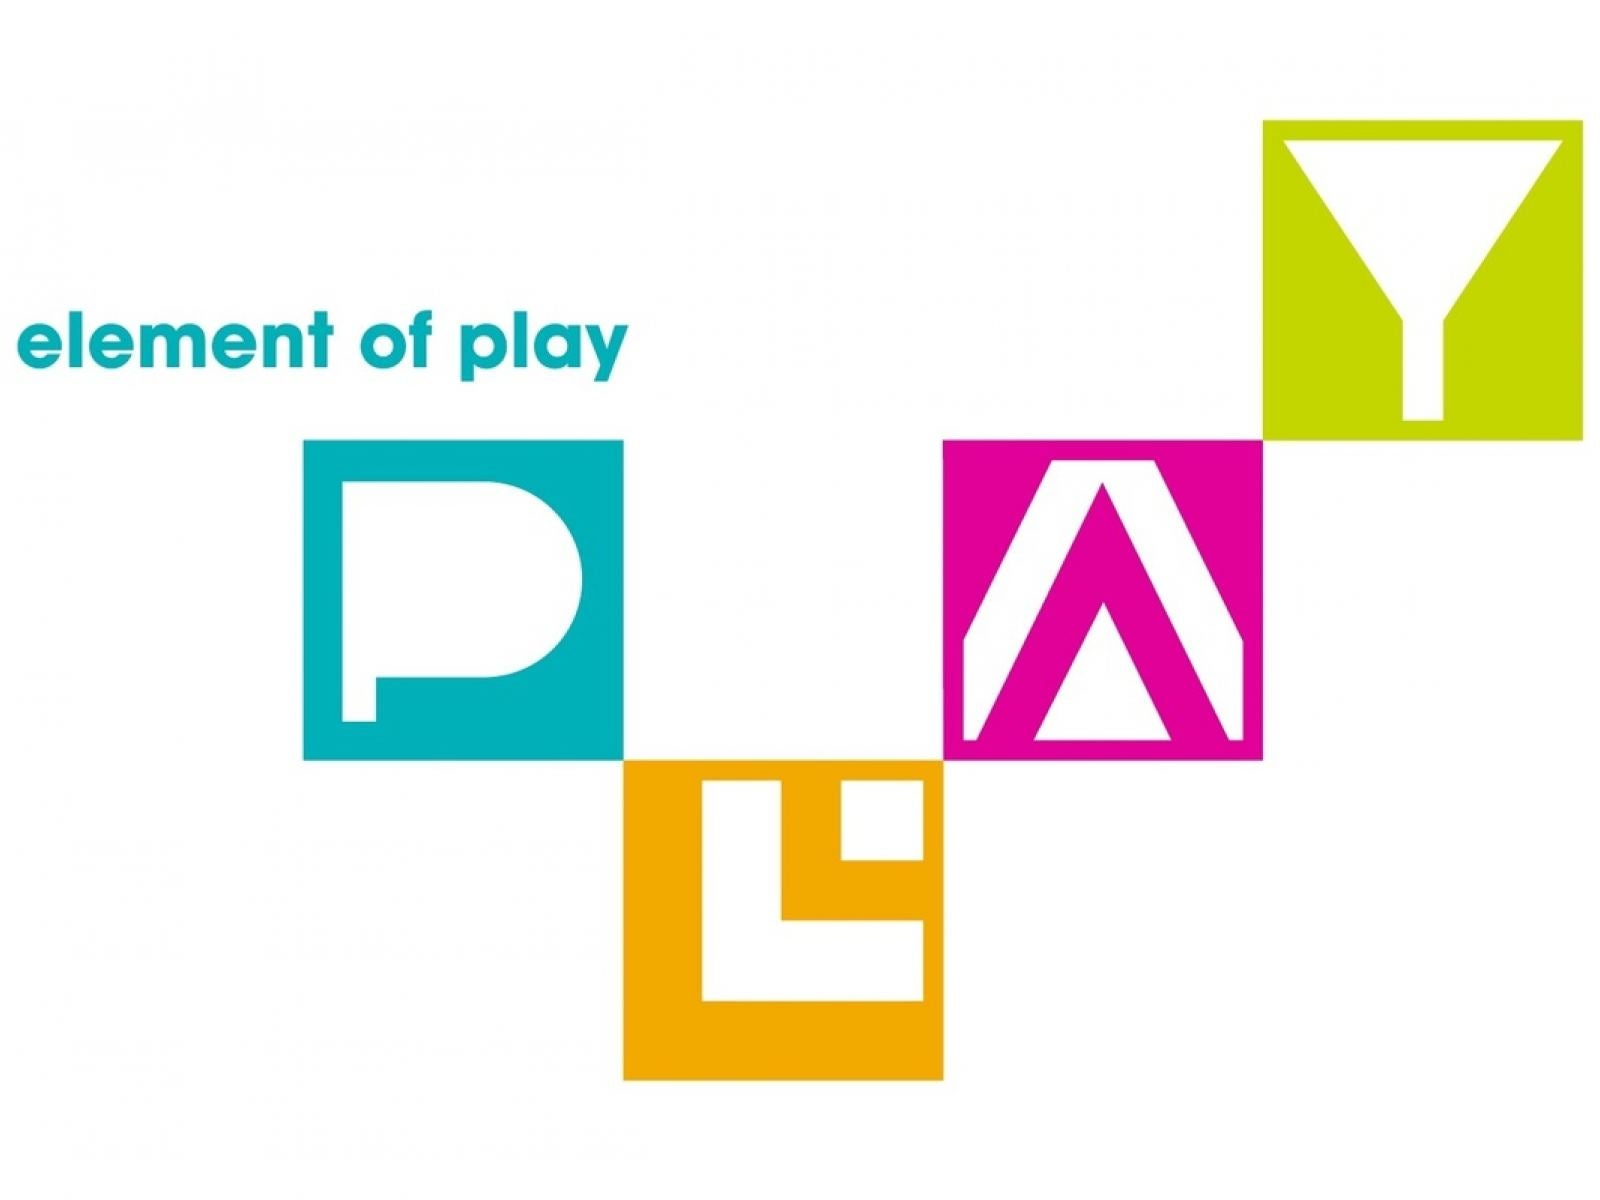 Join Worldwide Orphans educator Lois Kam Heymann and ICA LA staff for a reading hour of select books from the Element of Play® library. Snacks and light beverages provided.